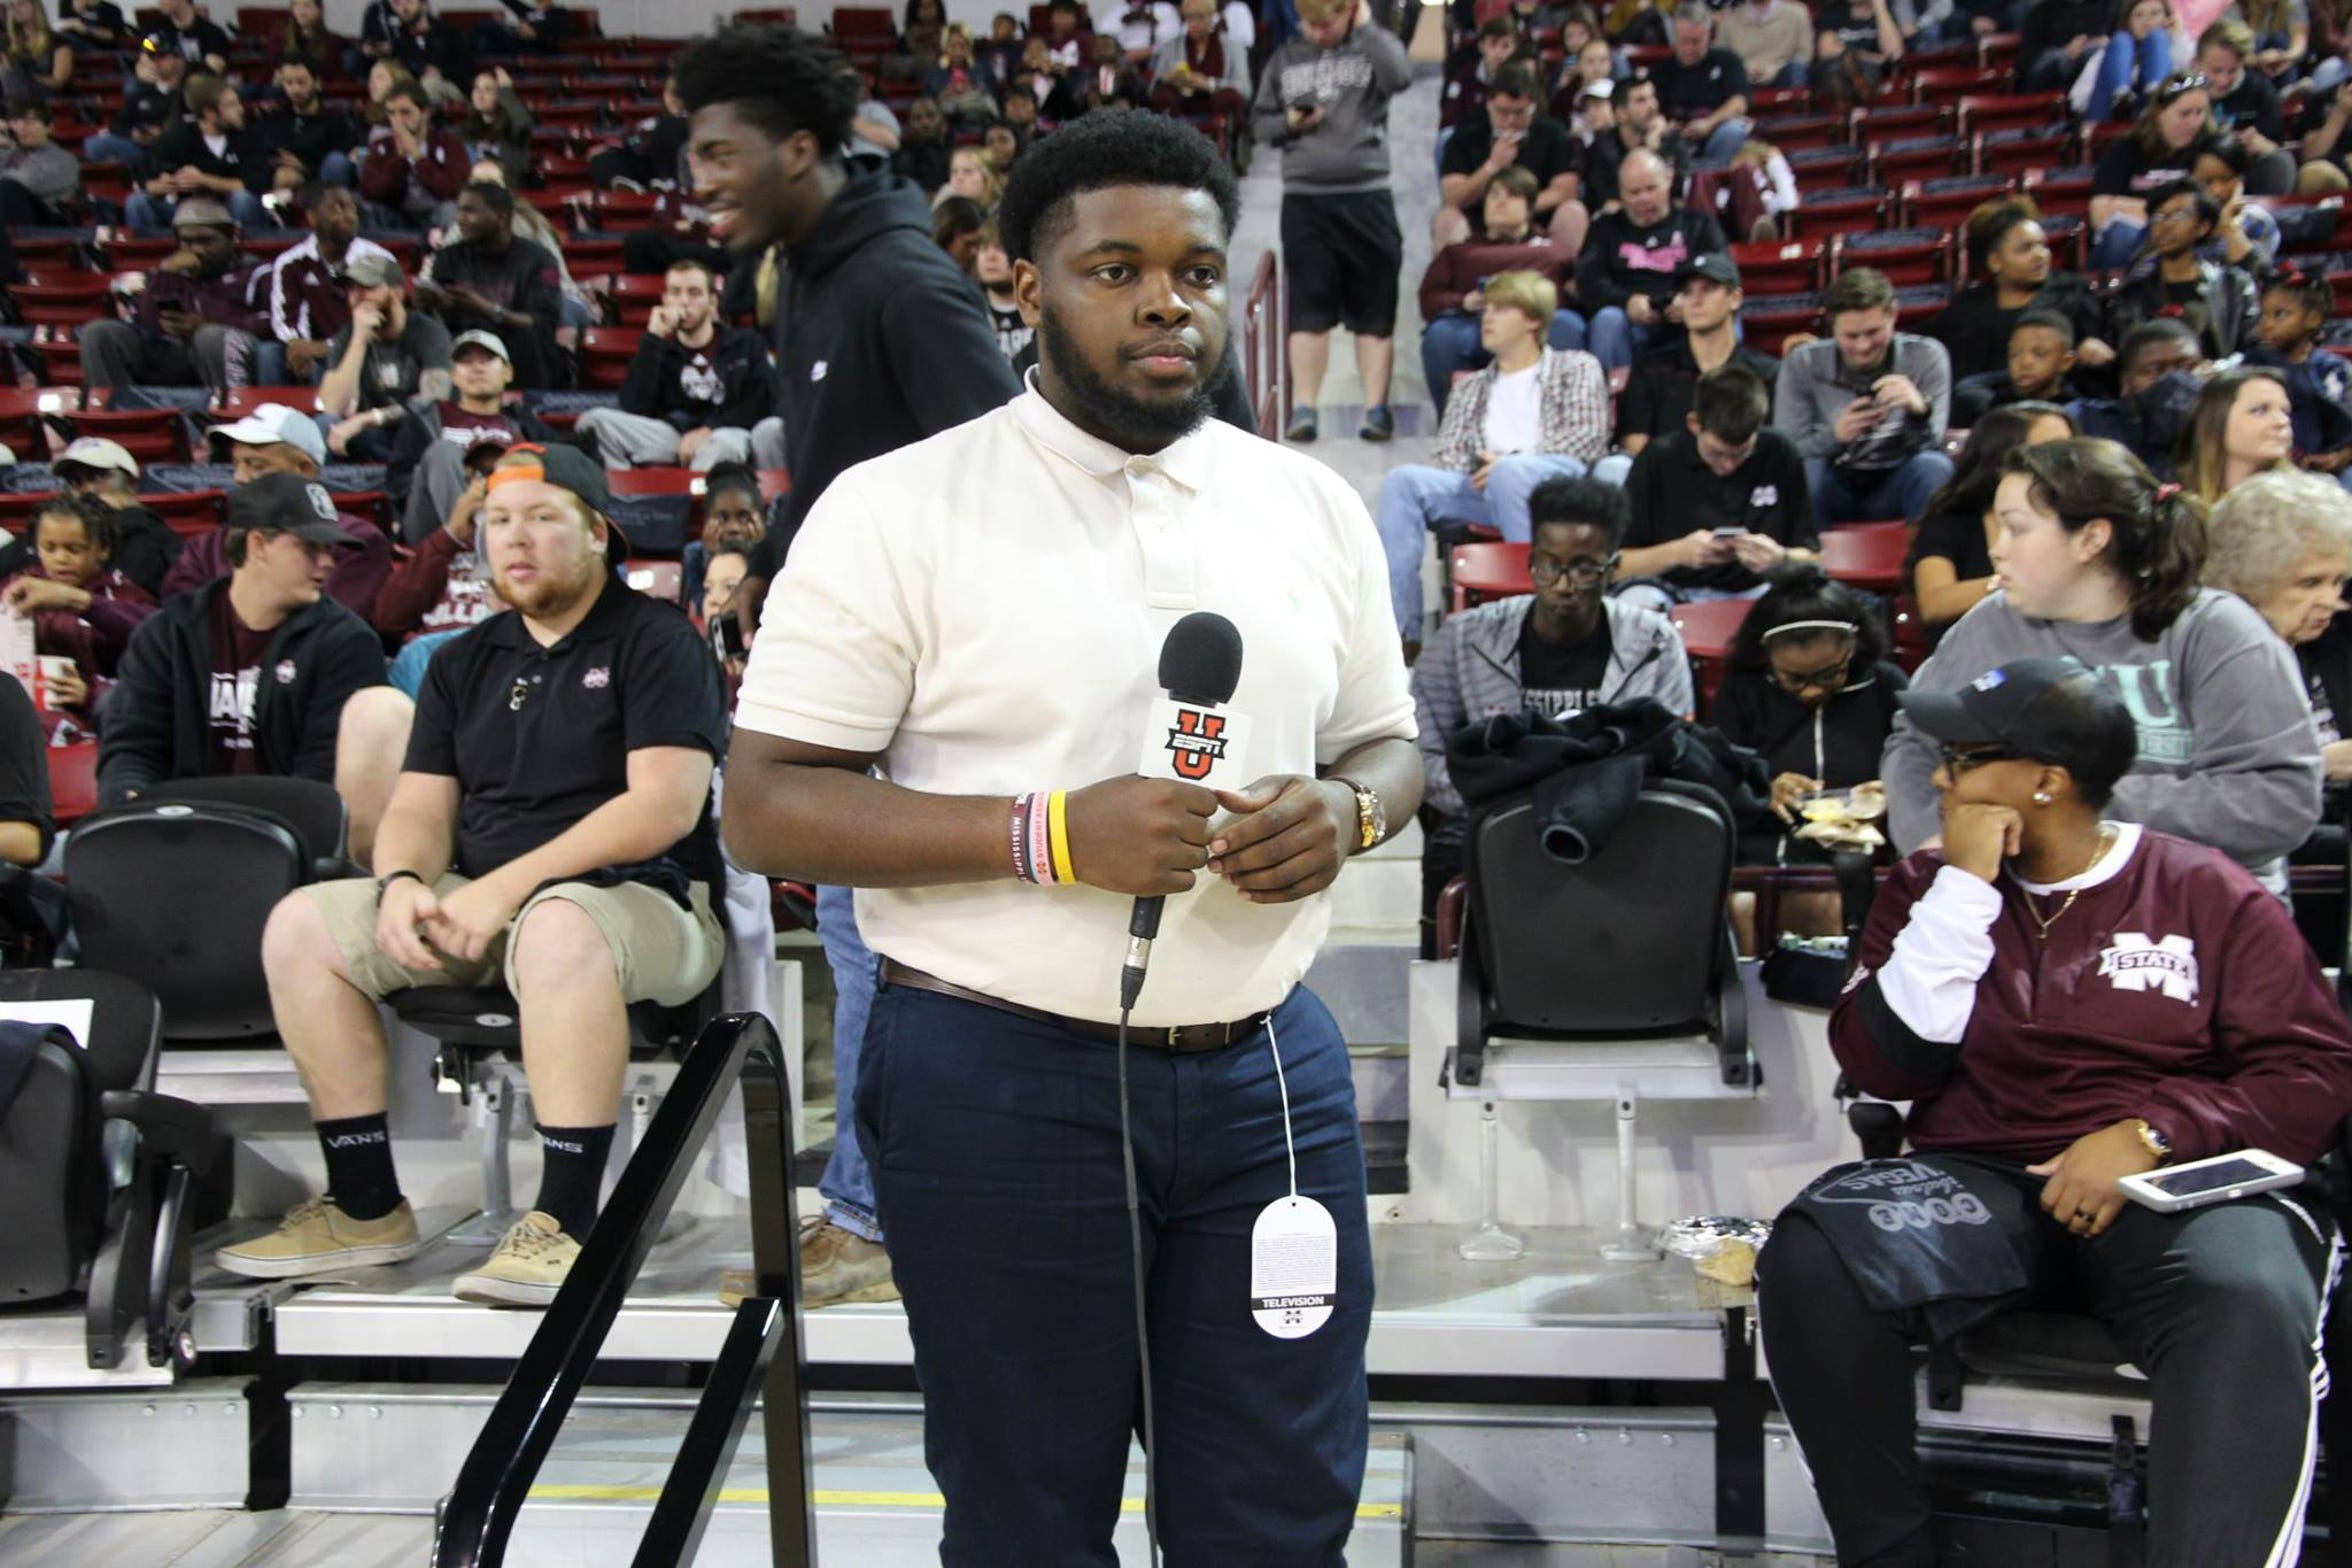 Ian Reed works for ESPNU during a Mississippi State basketball game. Reed graduated from Mississippi State in December 2016.